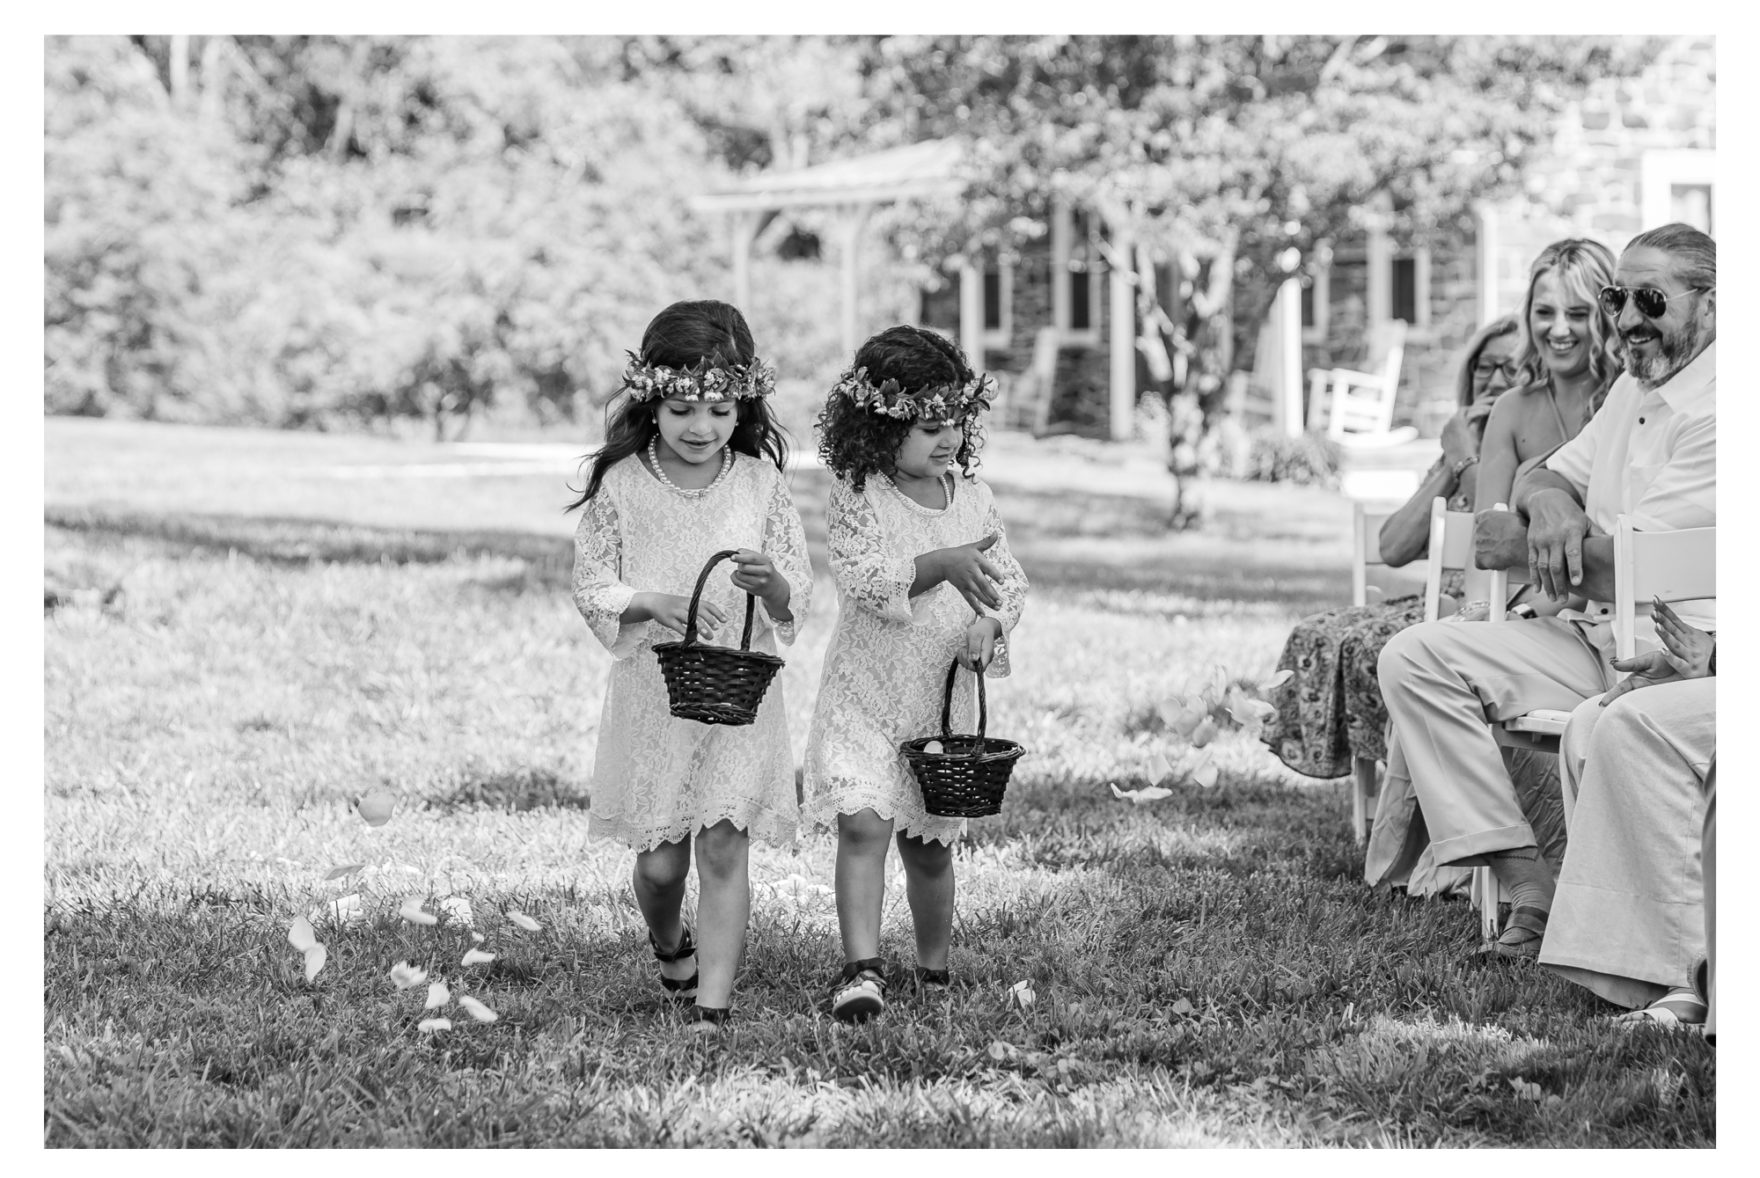 Summer wedding at a private residence farm in Westminster Carroll County Maryland. Cicadas, cows and dogs at the wedding. Pond view ceremony flower girls